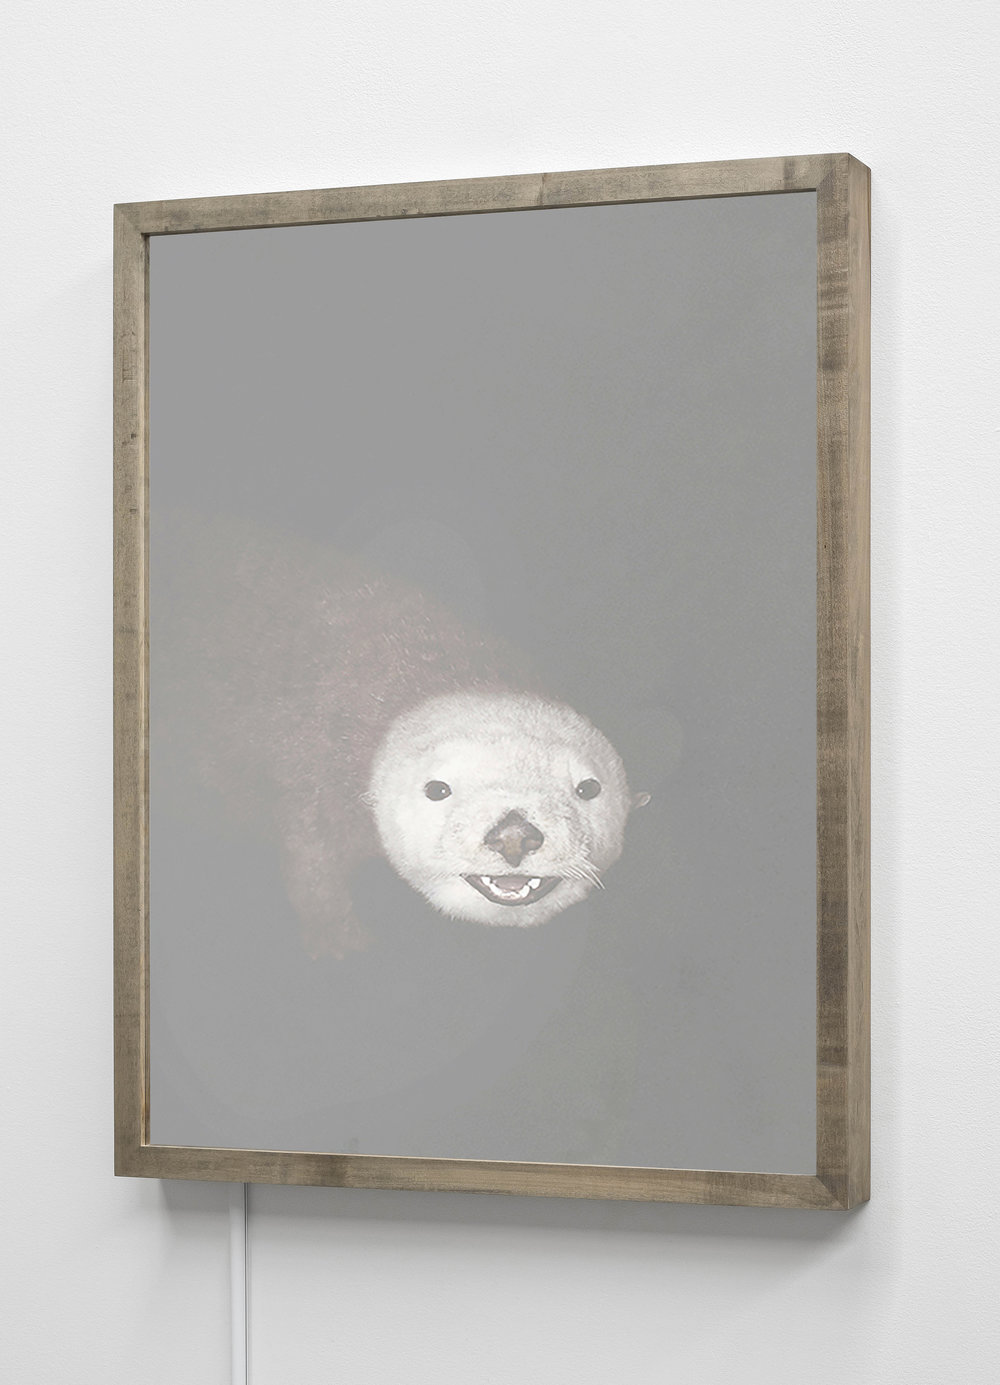 CHRISTINA SEELY  Sea Otter,  Enhydra lutris - Endangered Kinetic Mirrored Lightbox  Available sizes: 30 x 24 in | Edition of 3 + 1AP 20 x 16 in | Edition of 3 + 1AP